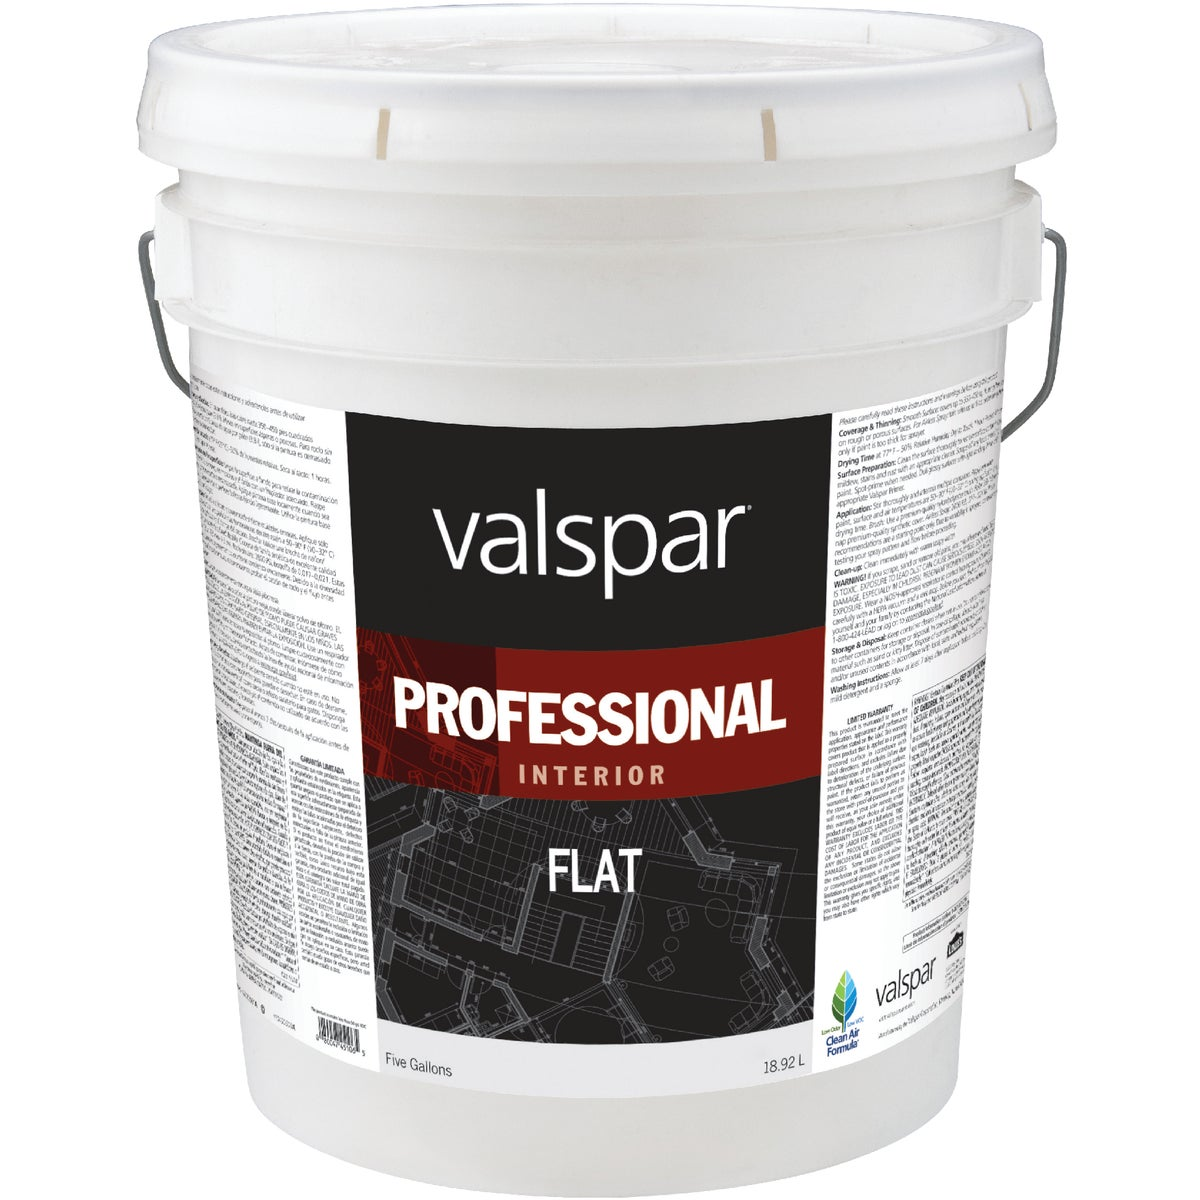 INT FLAT LGHT BASE PAINT - 045.0011611.008 by Valspar Corp